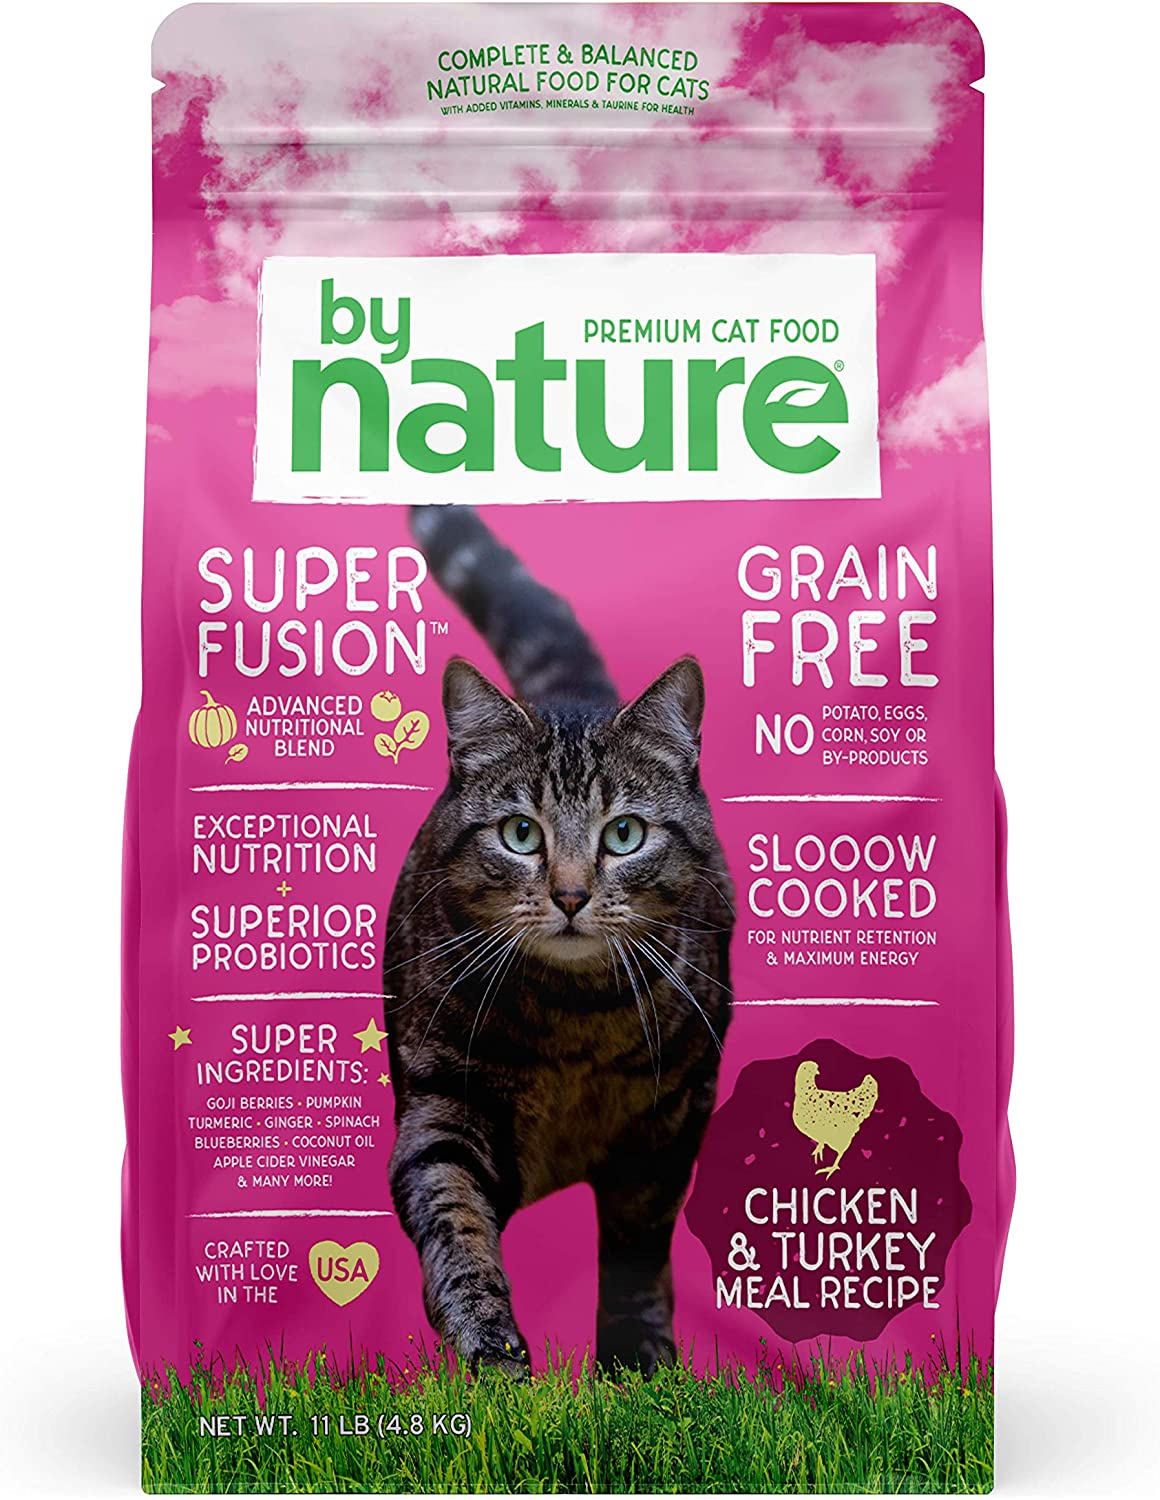 By Nature Pet Foods Grain Free Cat Food Made in USA [Grain Free Dry Cat Food with Superfood Ingredients for Food Sensitivities and Immune Health]